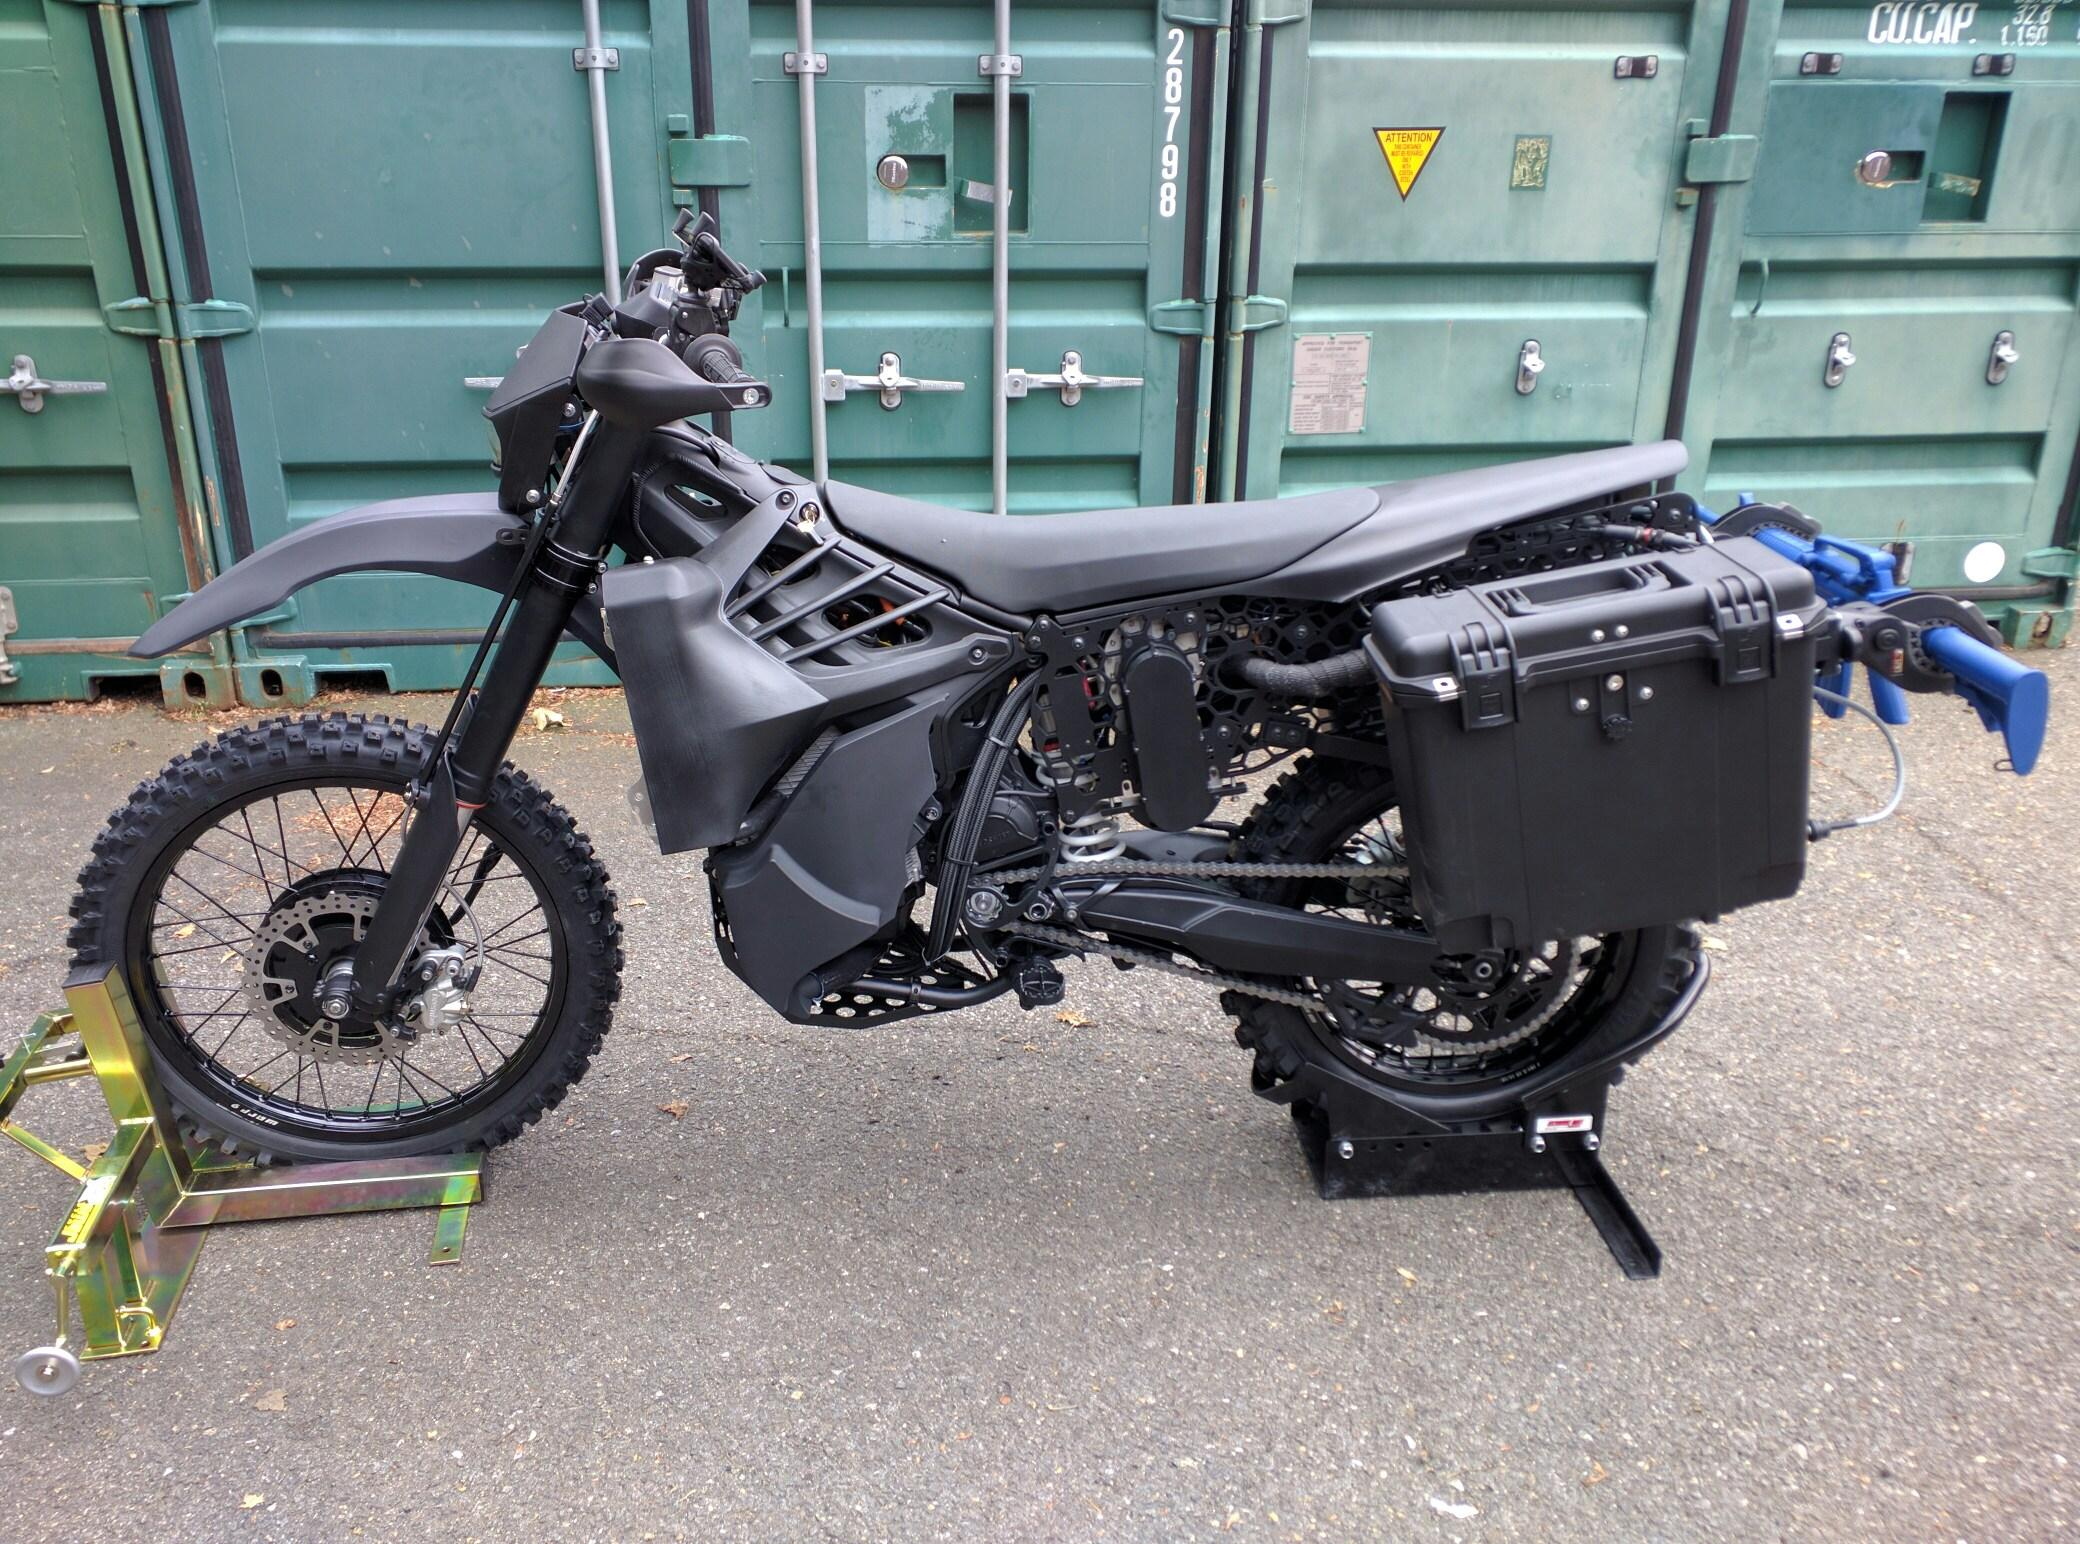 Silenthawk Hybrid Electric Military Motorcycle Atv